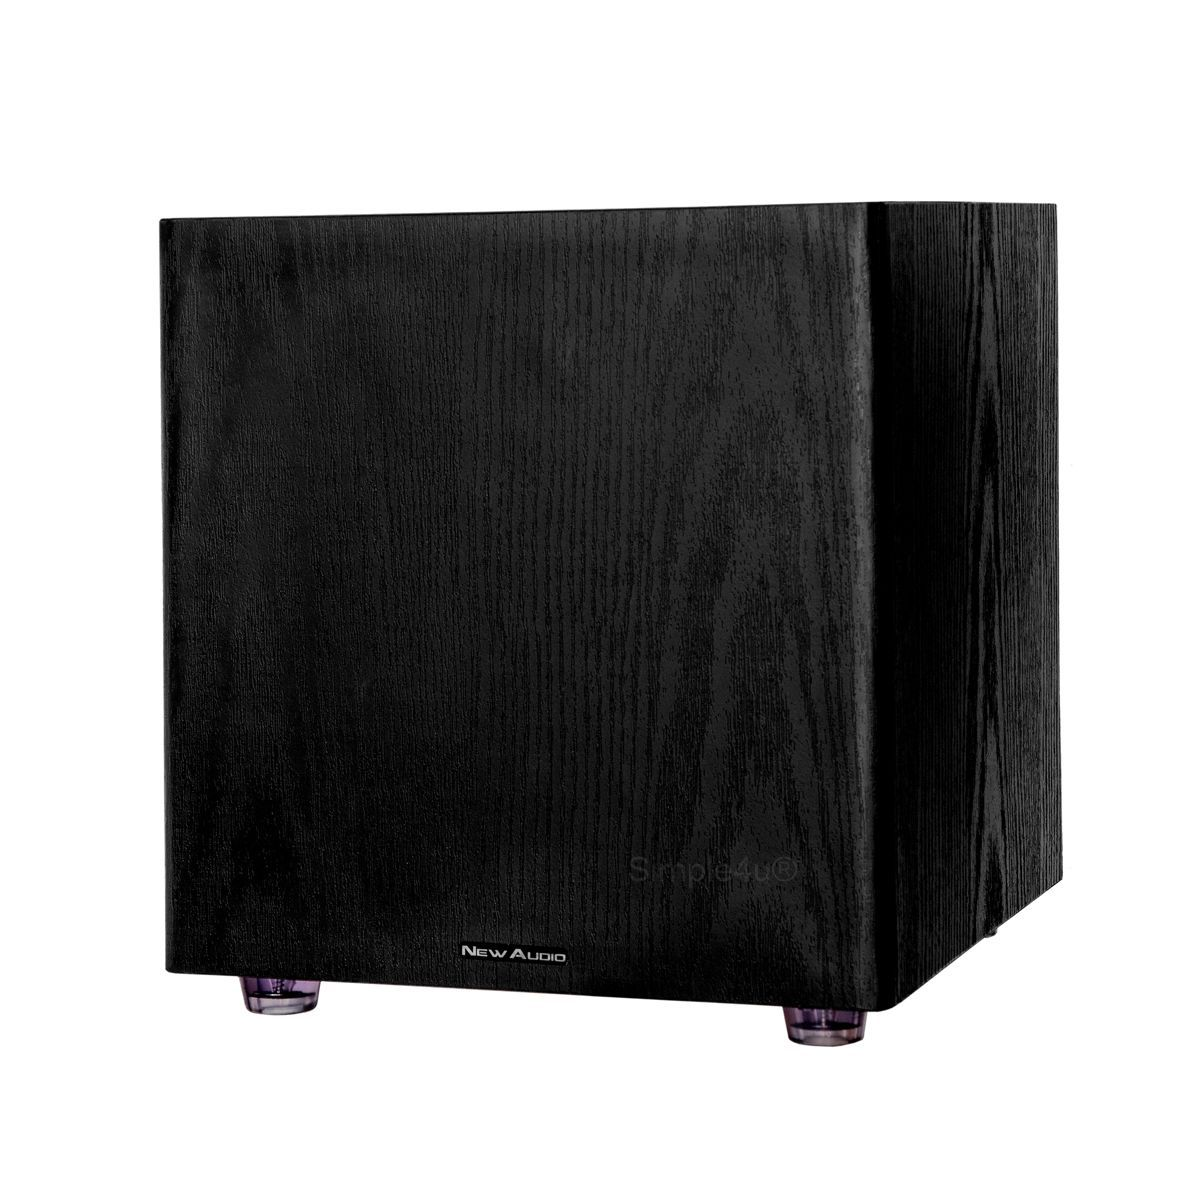 "Subwoofer Ativo 12"" 200W RMS Clean Design Black Wood SUB200 12 New Audio"